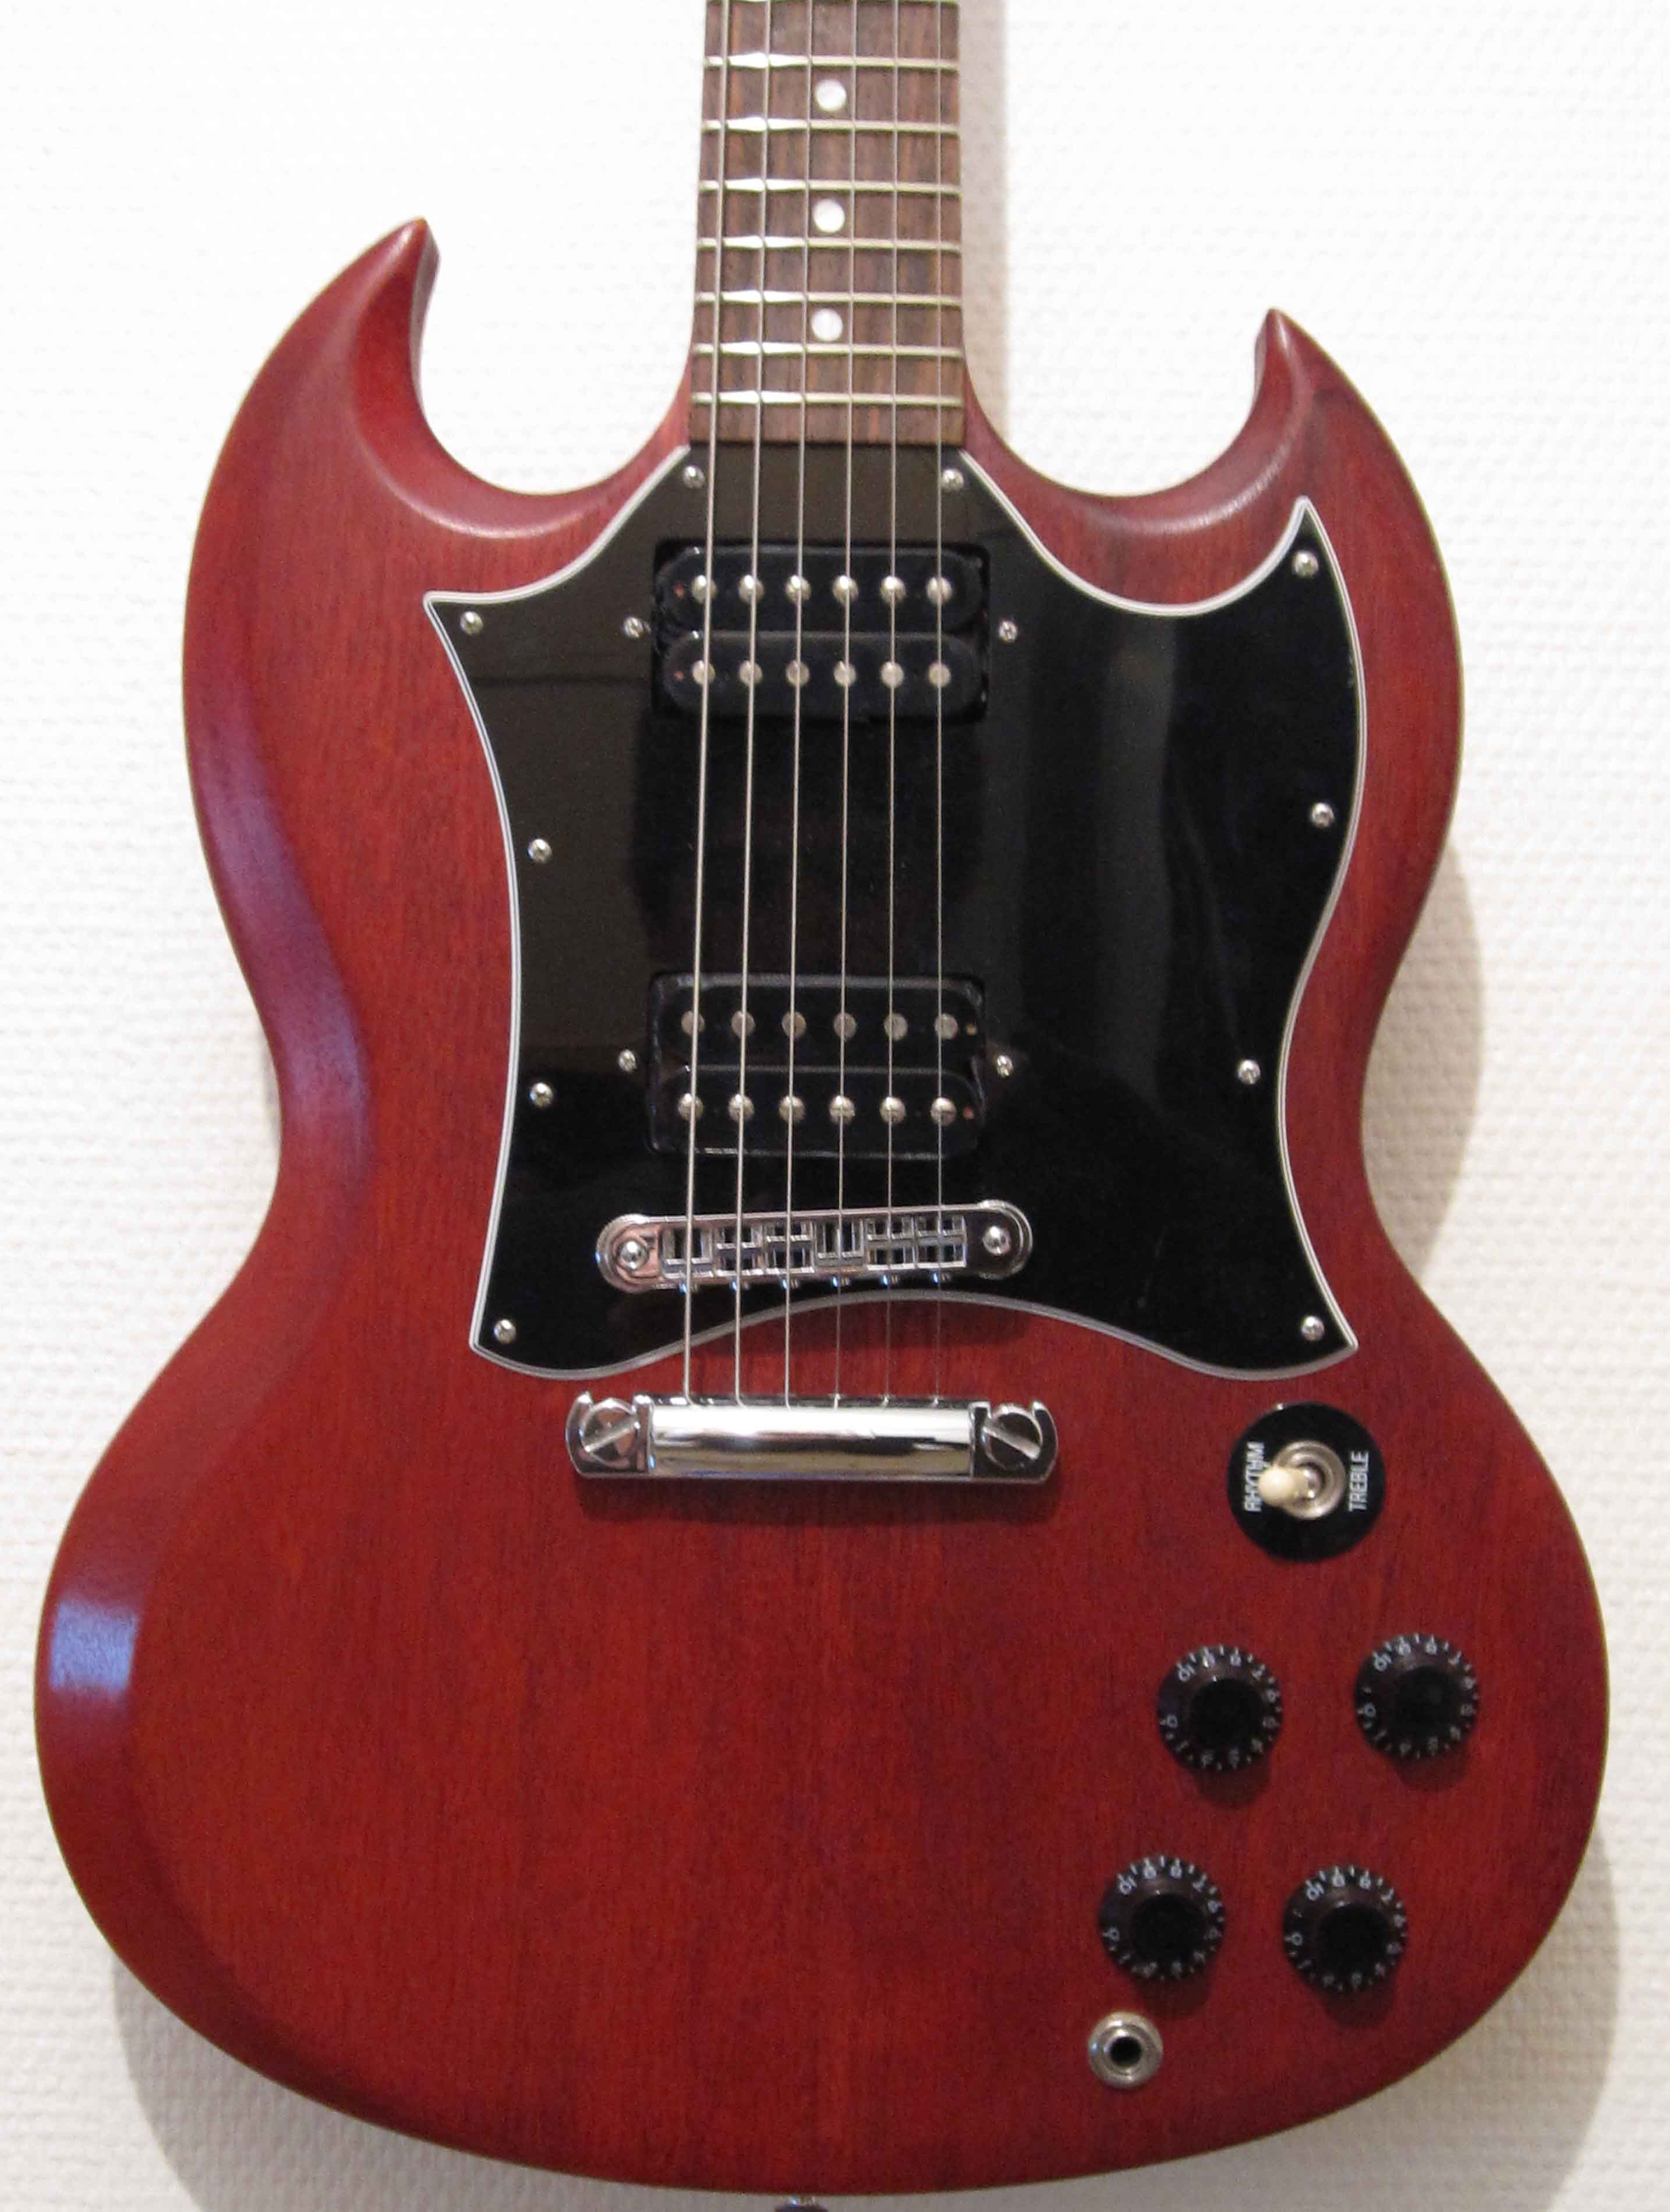 gibson sg special faded worn cherry image 45050 audiofanzine. Black Bedroom Furniture Sets. Home Design Ideas